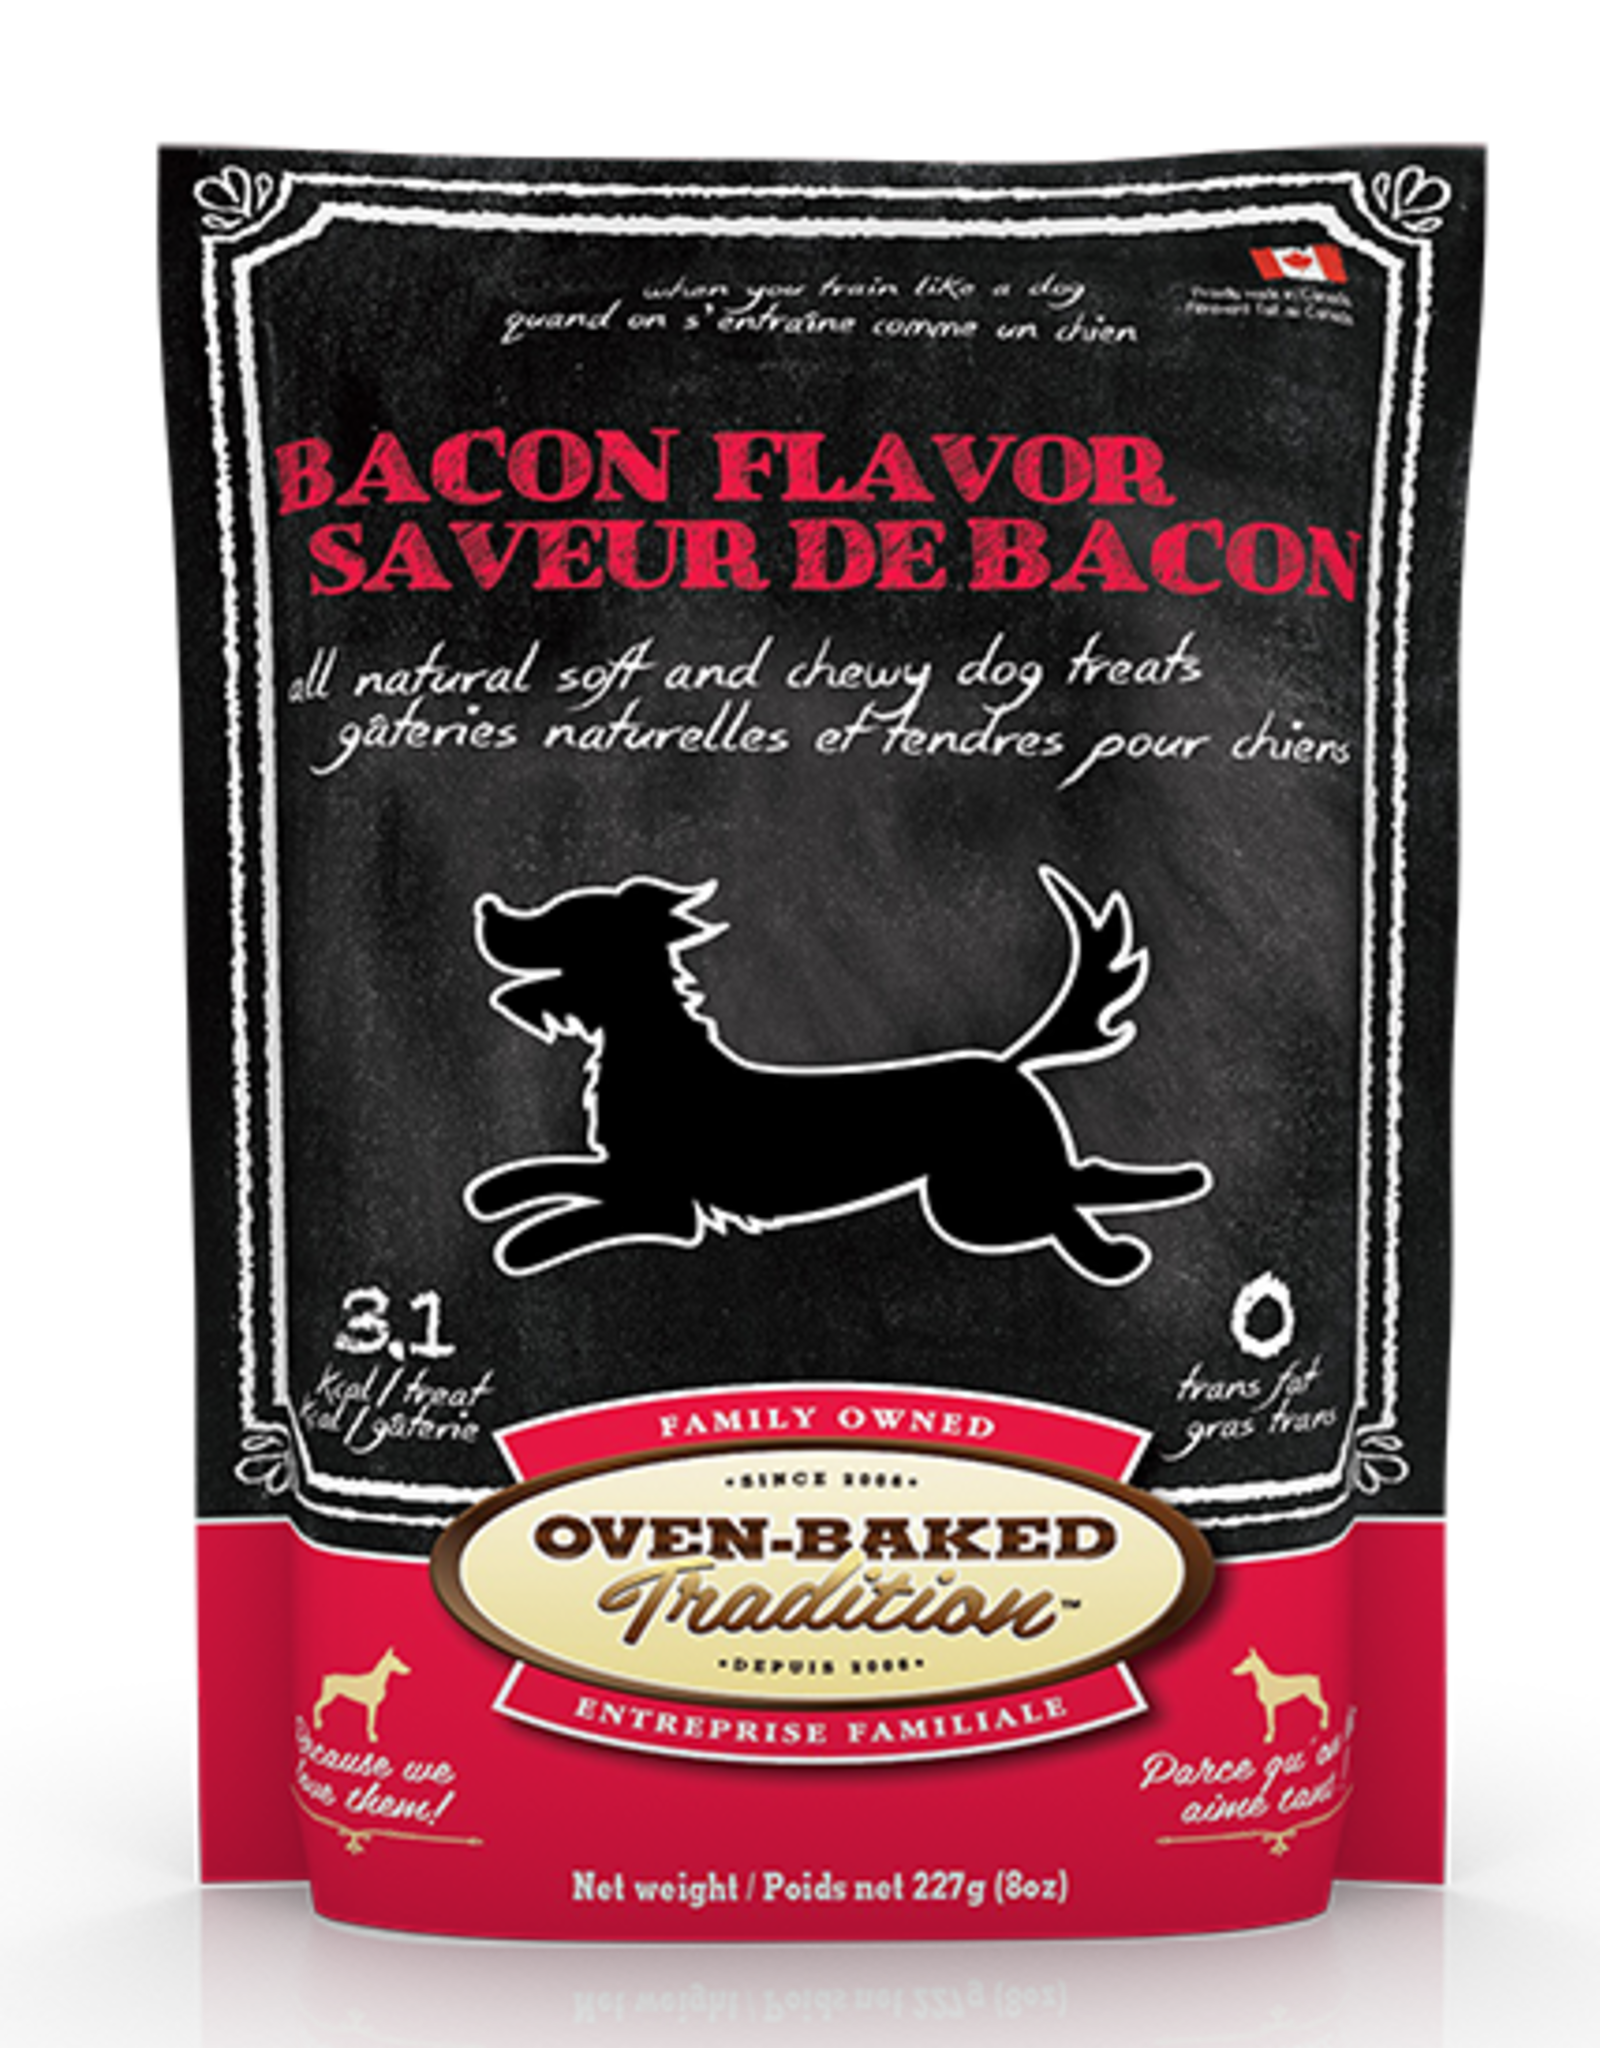 Oven Baked Tradition Oven Baked Tradition bacon flavour dog treats